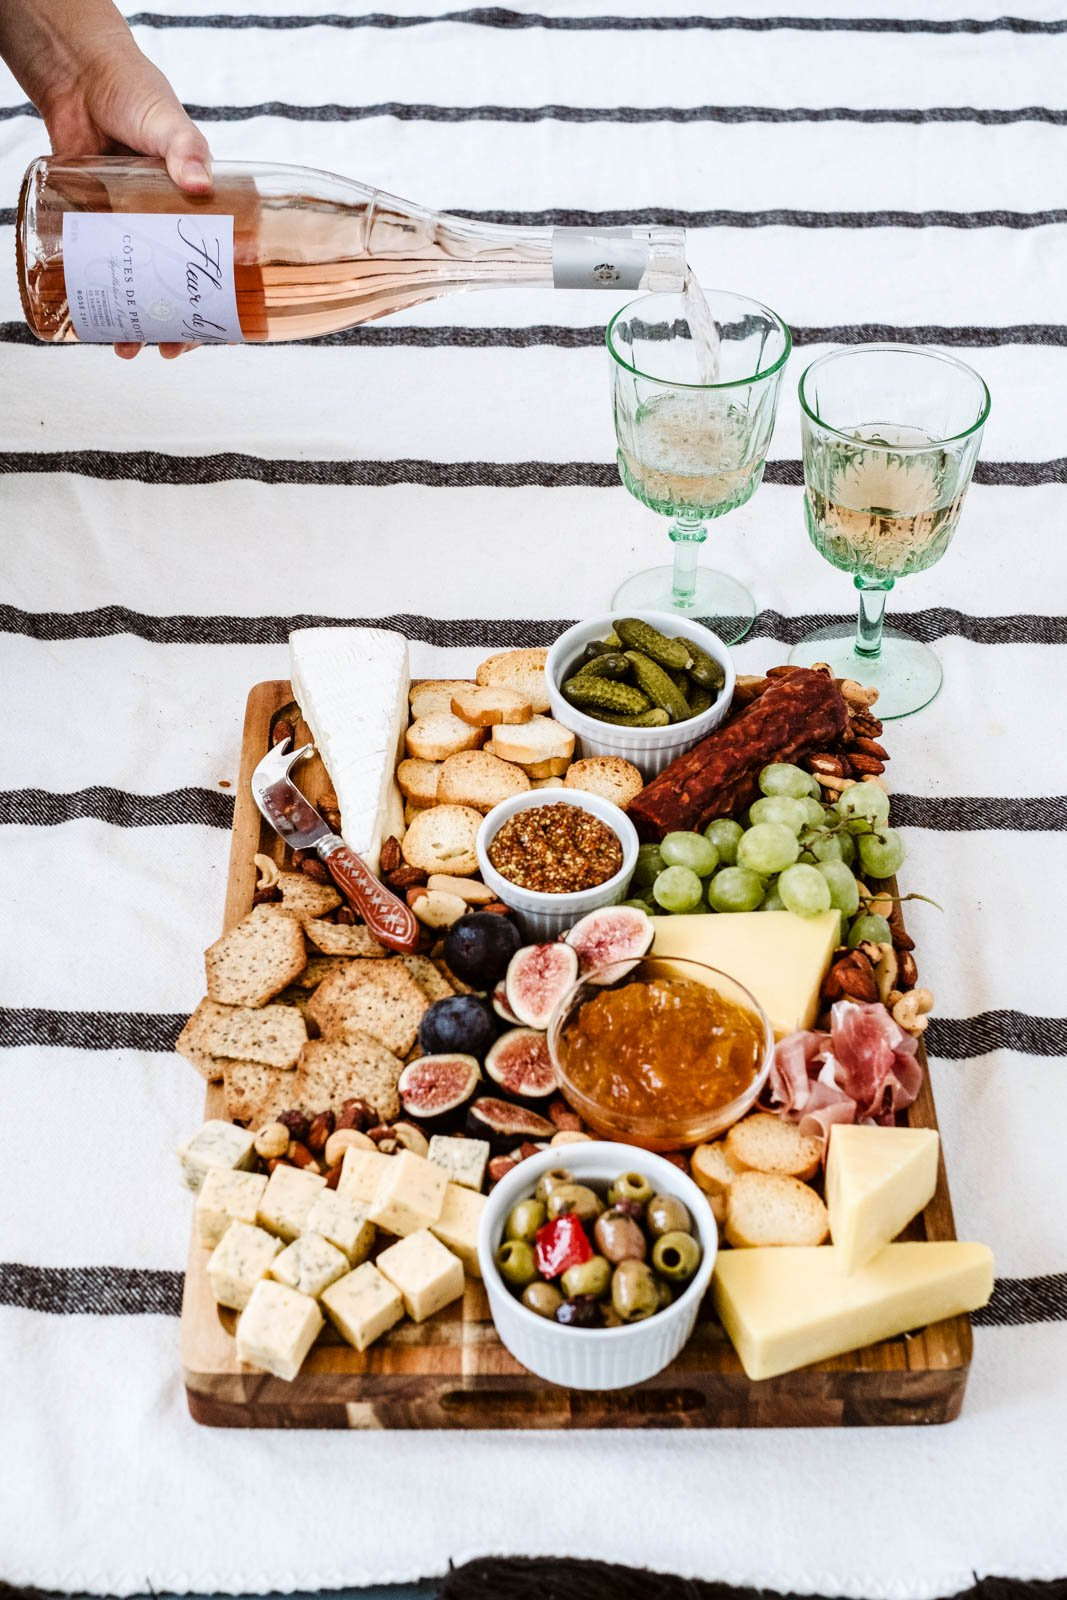 pouring rosé into two wine glasses next to a charcuterie board